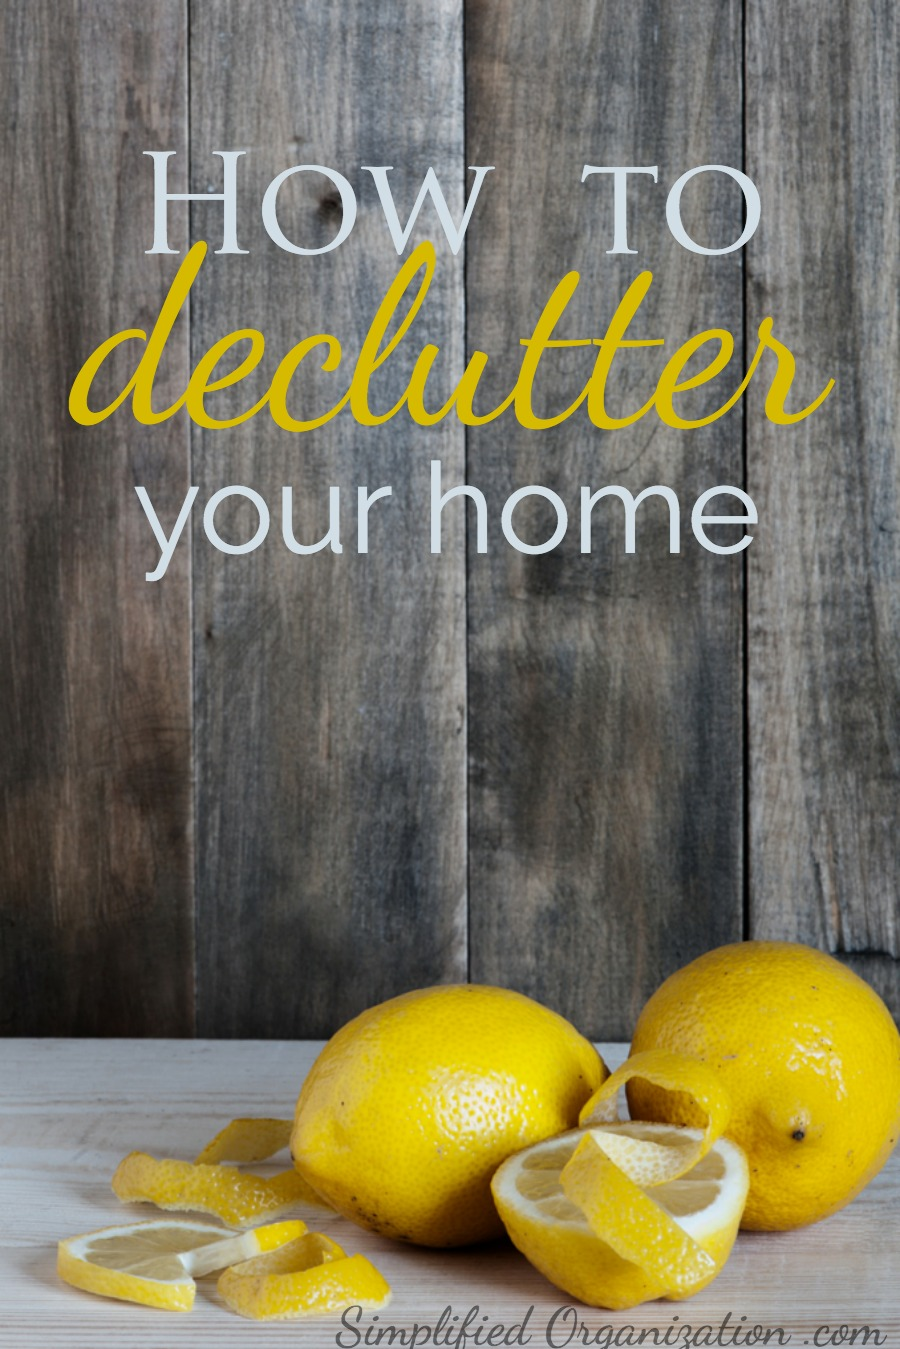 So you want to get organized? Start with decluttering! How to declutter your home in simple, straightforward steps that take real life into account.